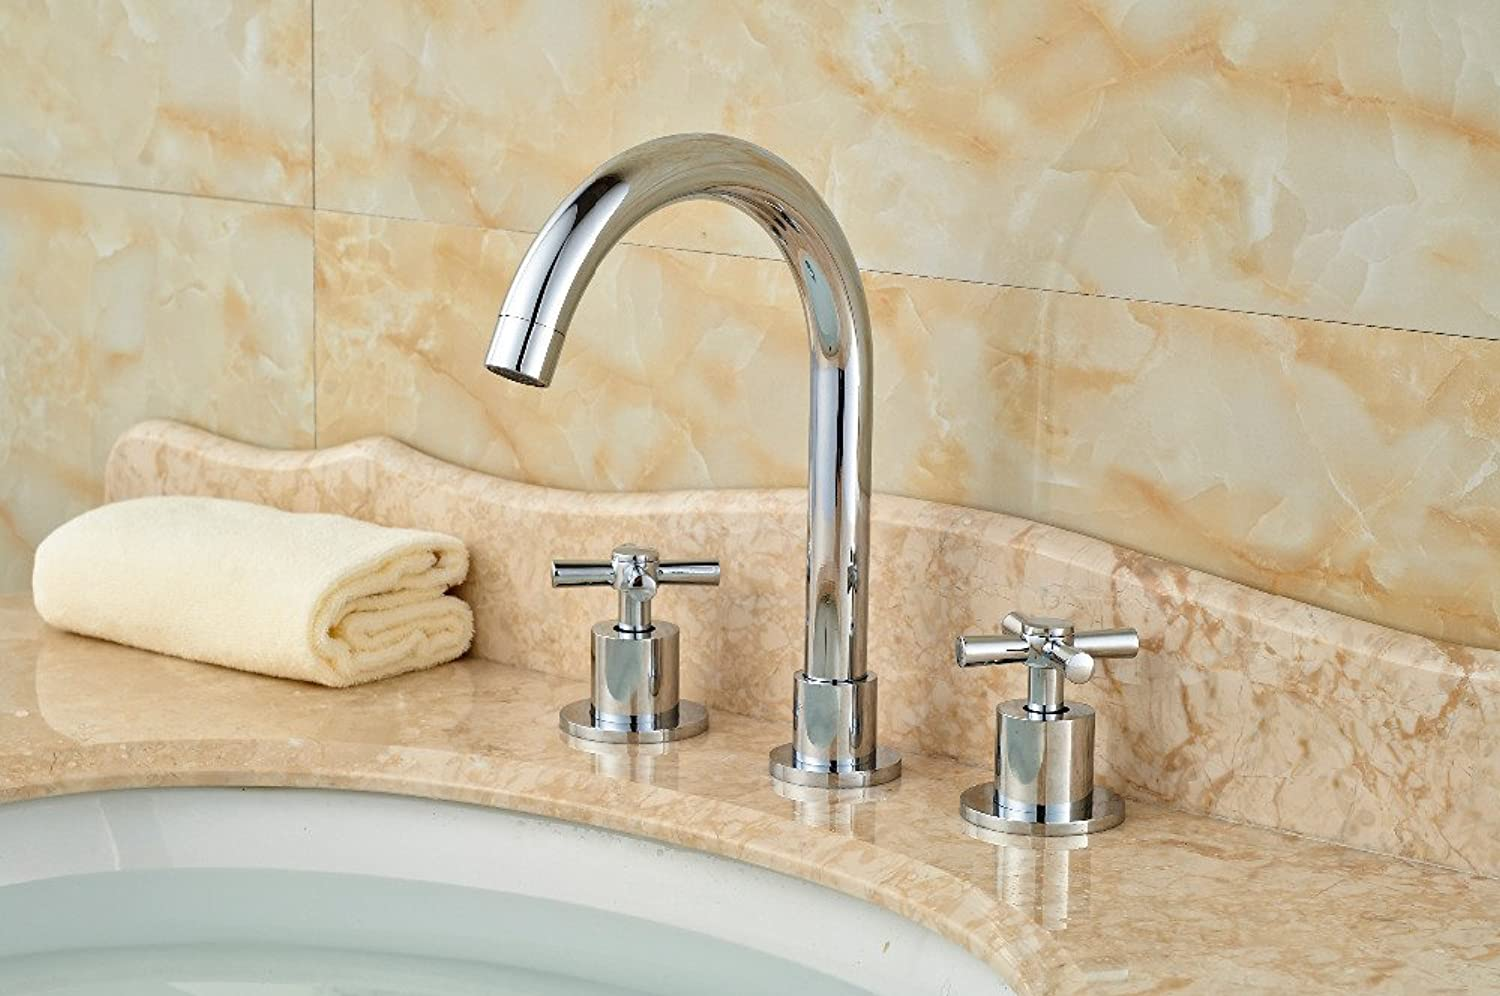 Electroplating Retro Faucet Luxury Deck Mounted Chrome Brass Bathroom Basin Sink Faucet Mixer tap 3PCS 2 Handles,Multi